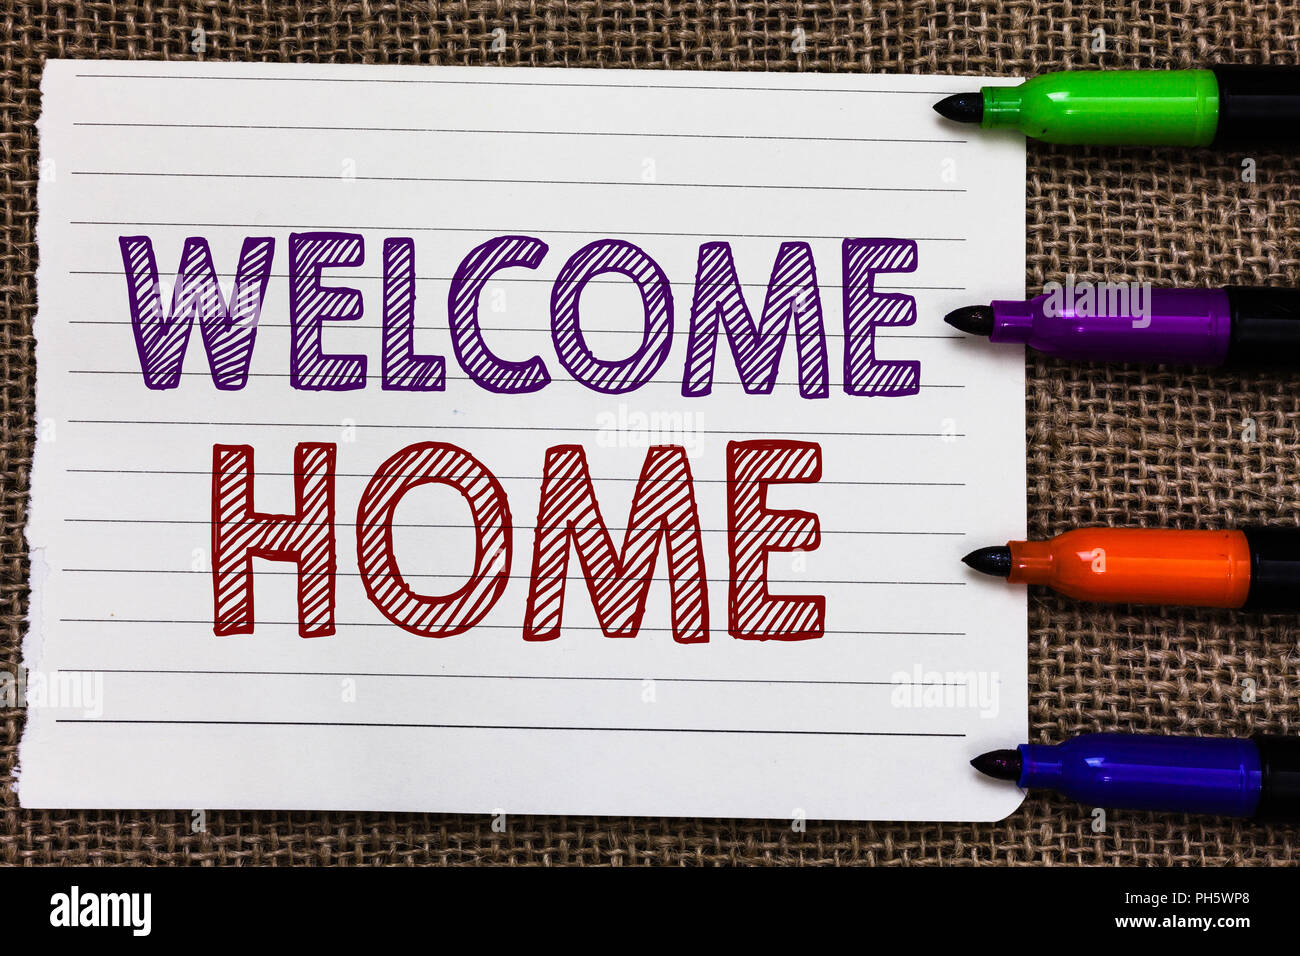 Conceptual hand writing showing welcome home business photo conceptual hand writing showing welcome home business photo showcasing expression greetings new owners domicile doormat entry notebook paper importan m4hsunfo